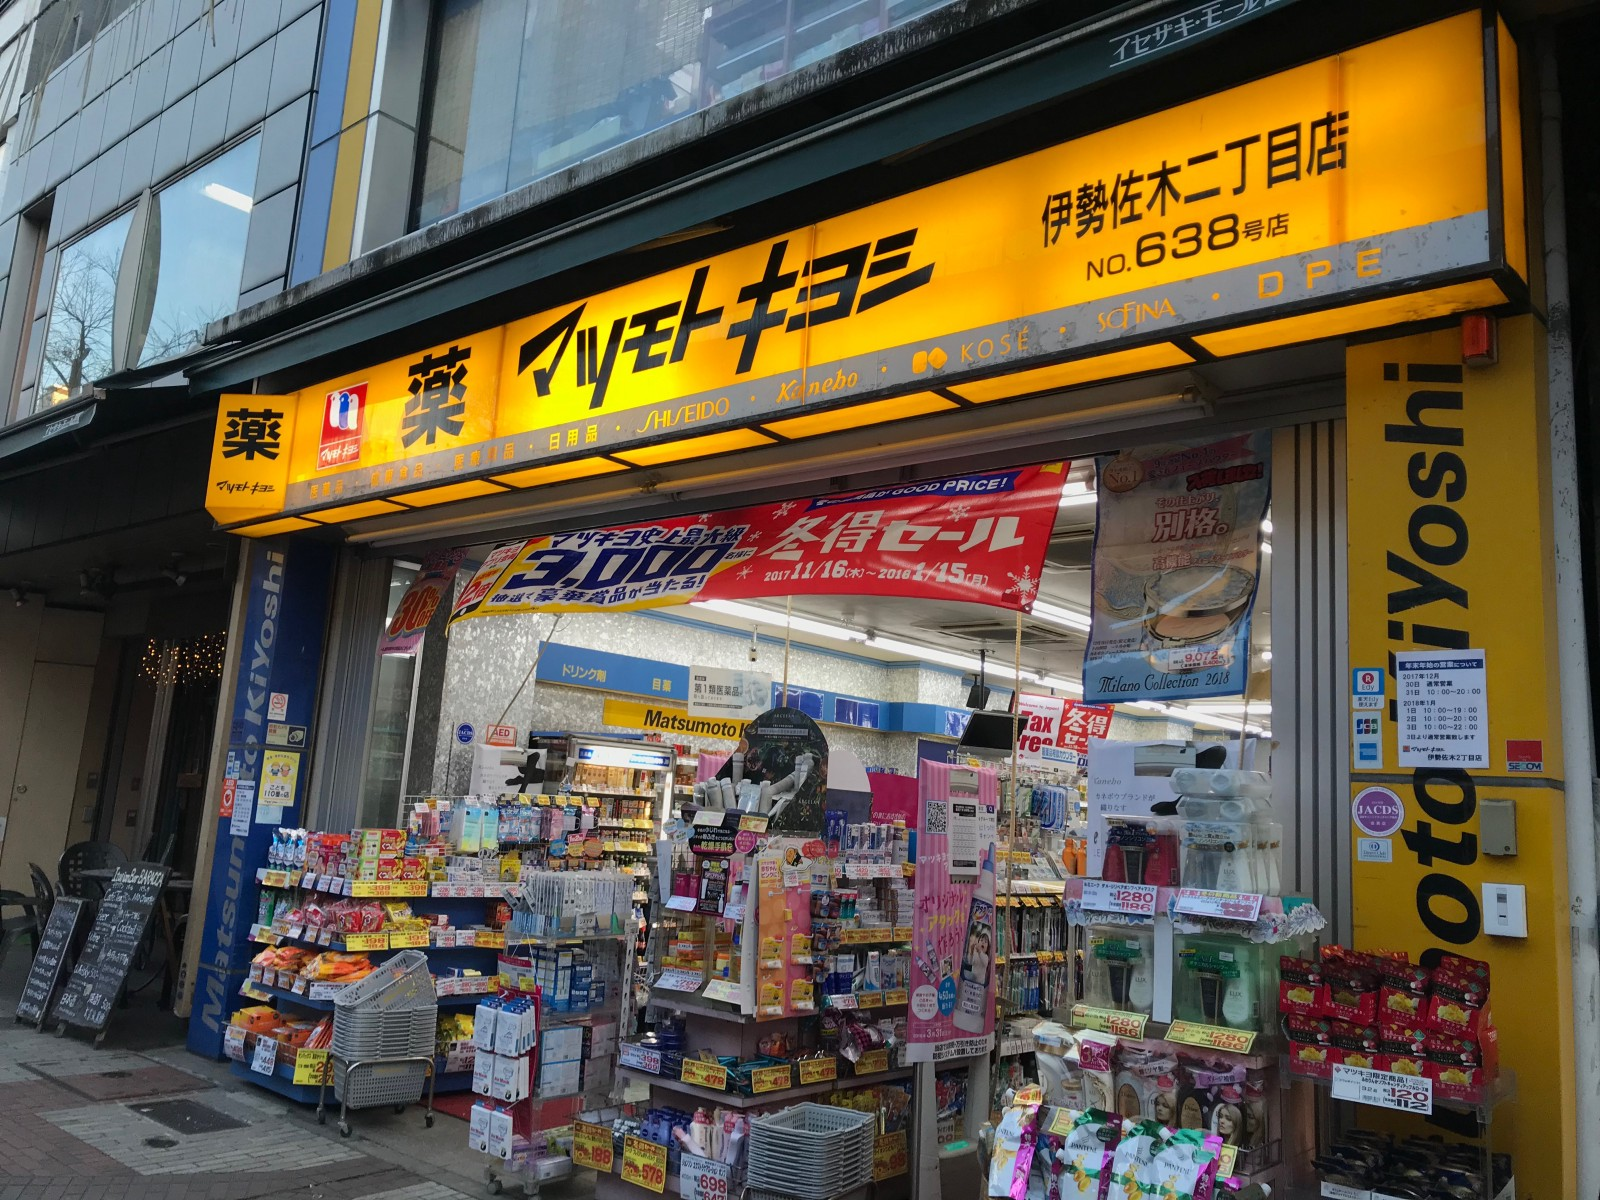 5874e6e1485 Matsumoto Kiyoshi (マツモトキヨシ) a.k.a. Matsukiyo is the most famous drugstore  in Japan, which you can find its yellow shop display at every town.